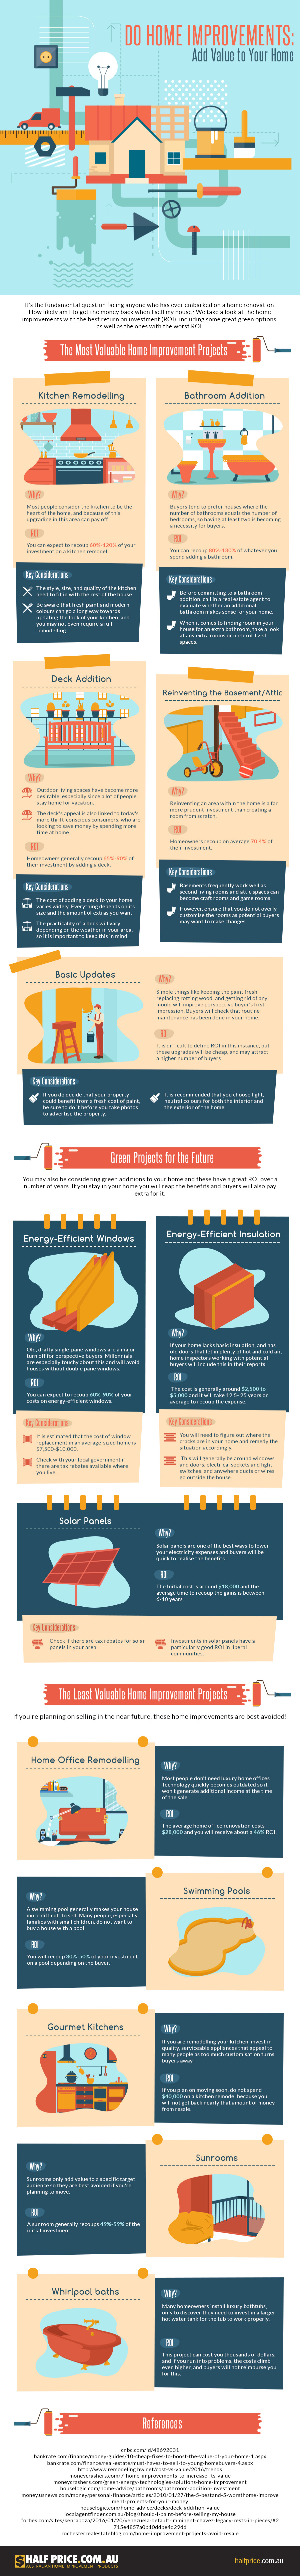 Home Improvements Add Value to your Home [Infographic]